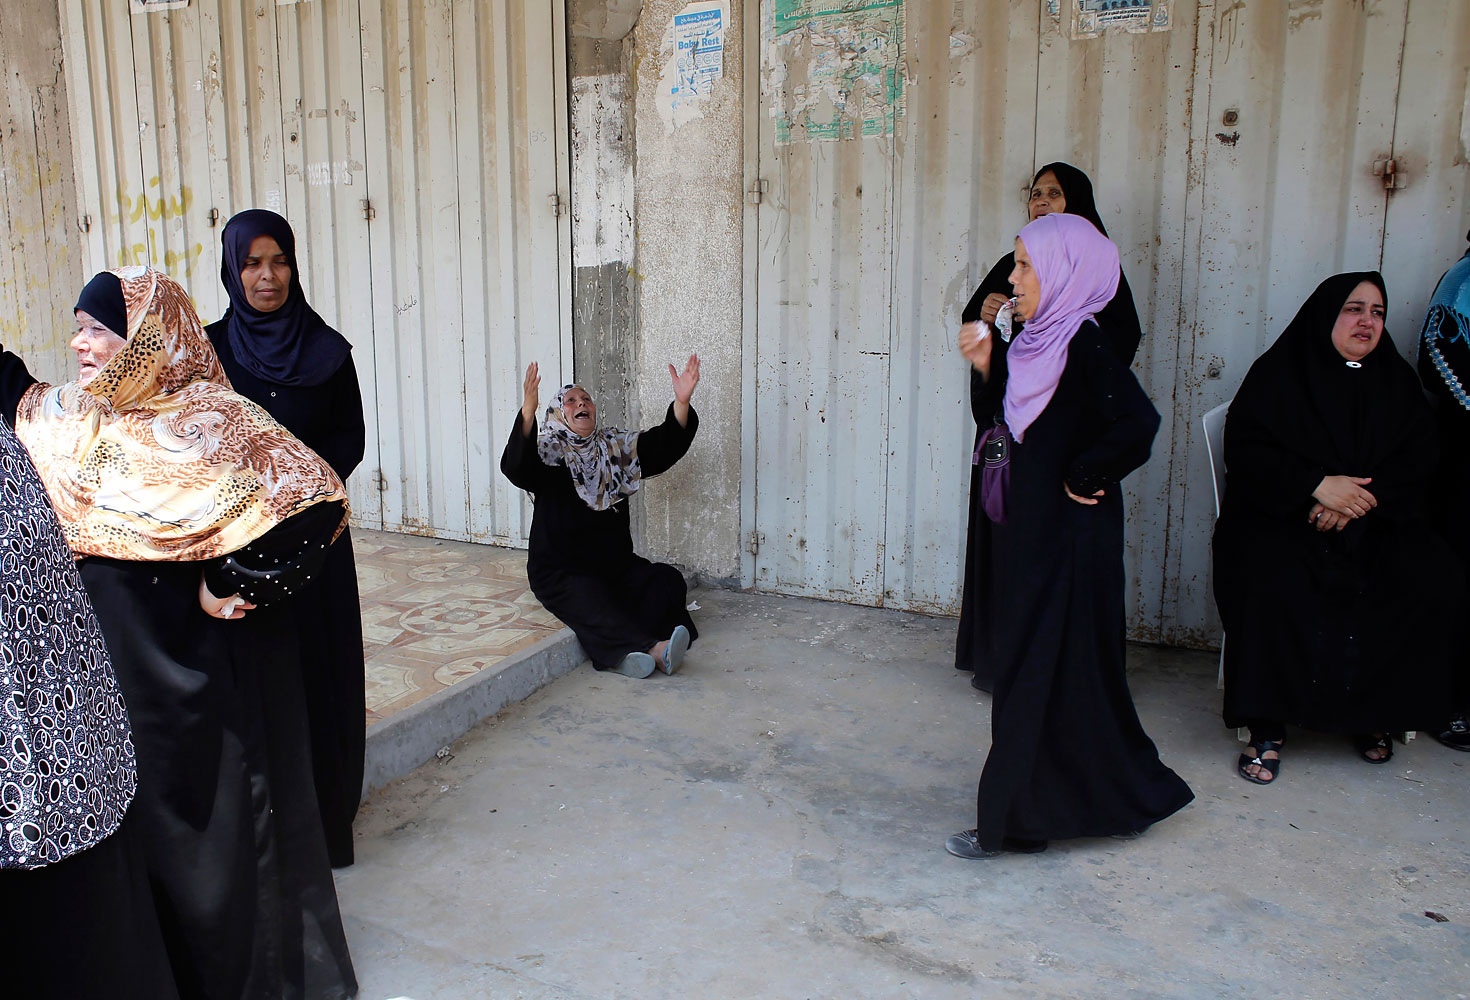 Relatives of three Palestinians from Abu Muamar family, who medics said were killed in an Israeli air strike, mourn during their funeral in Rafah in the southern Gaza Strip July 20, 2014.